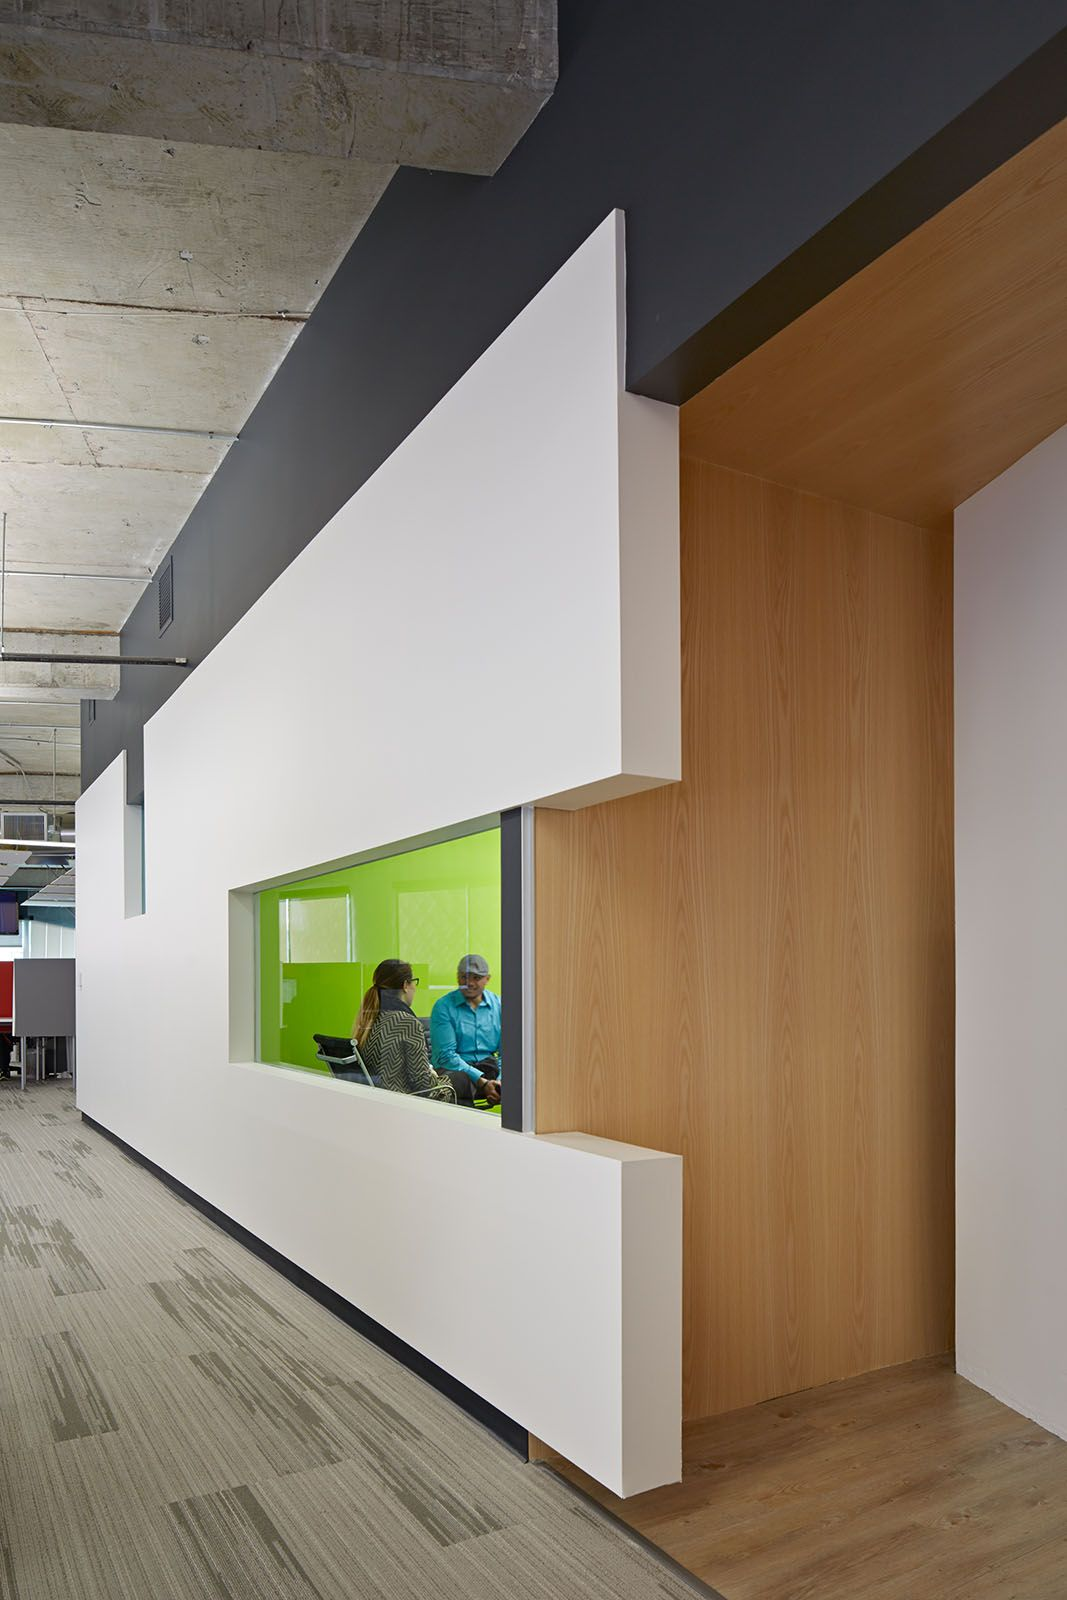 1000 images about work inspiration on pinterest conference room lobbies and offices ancestrycom featured office snapshots